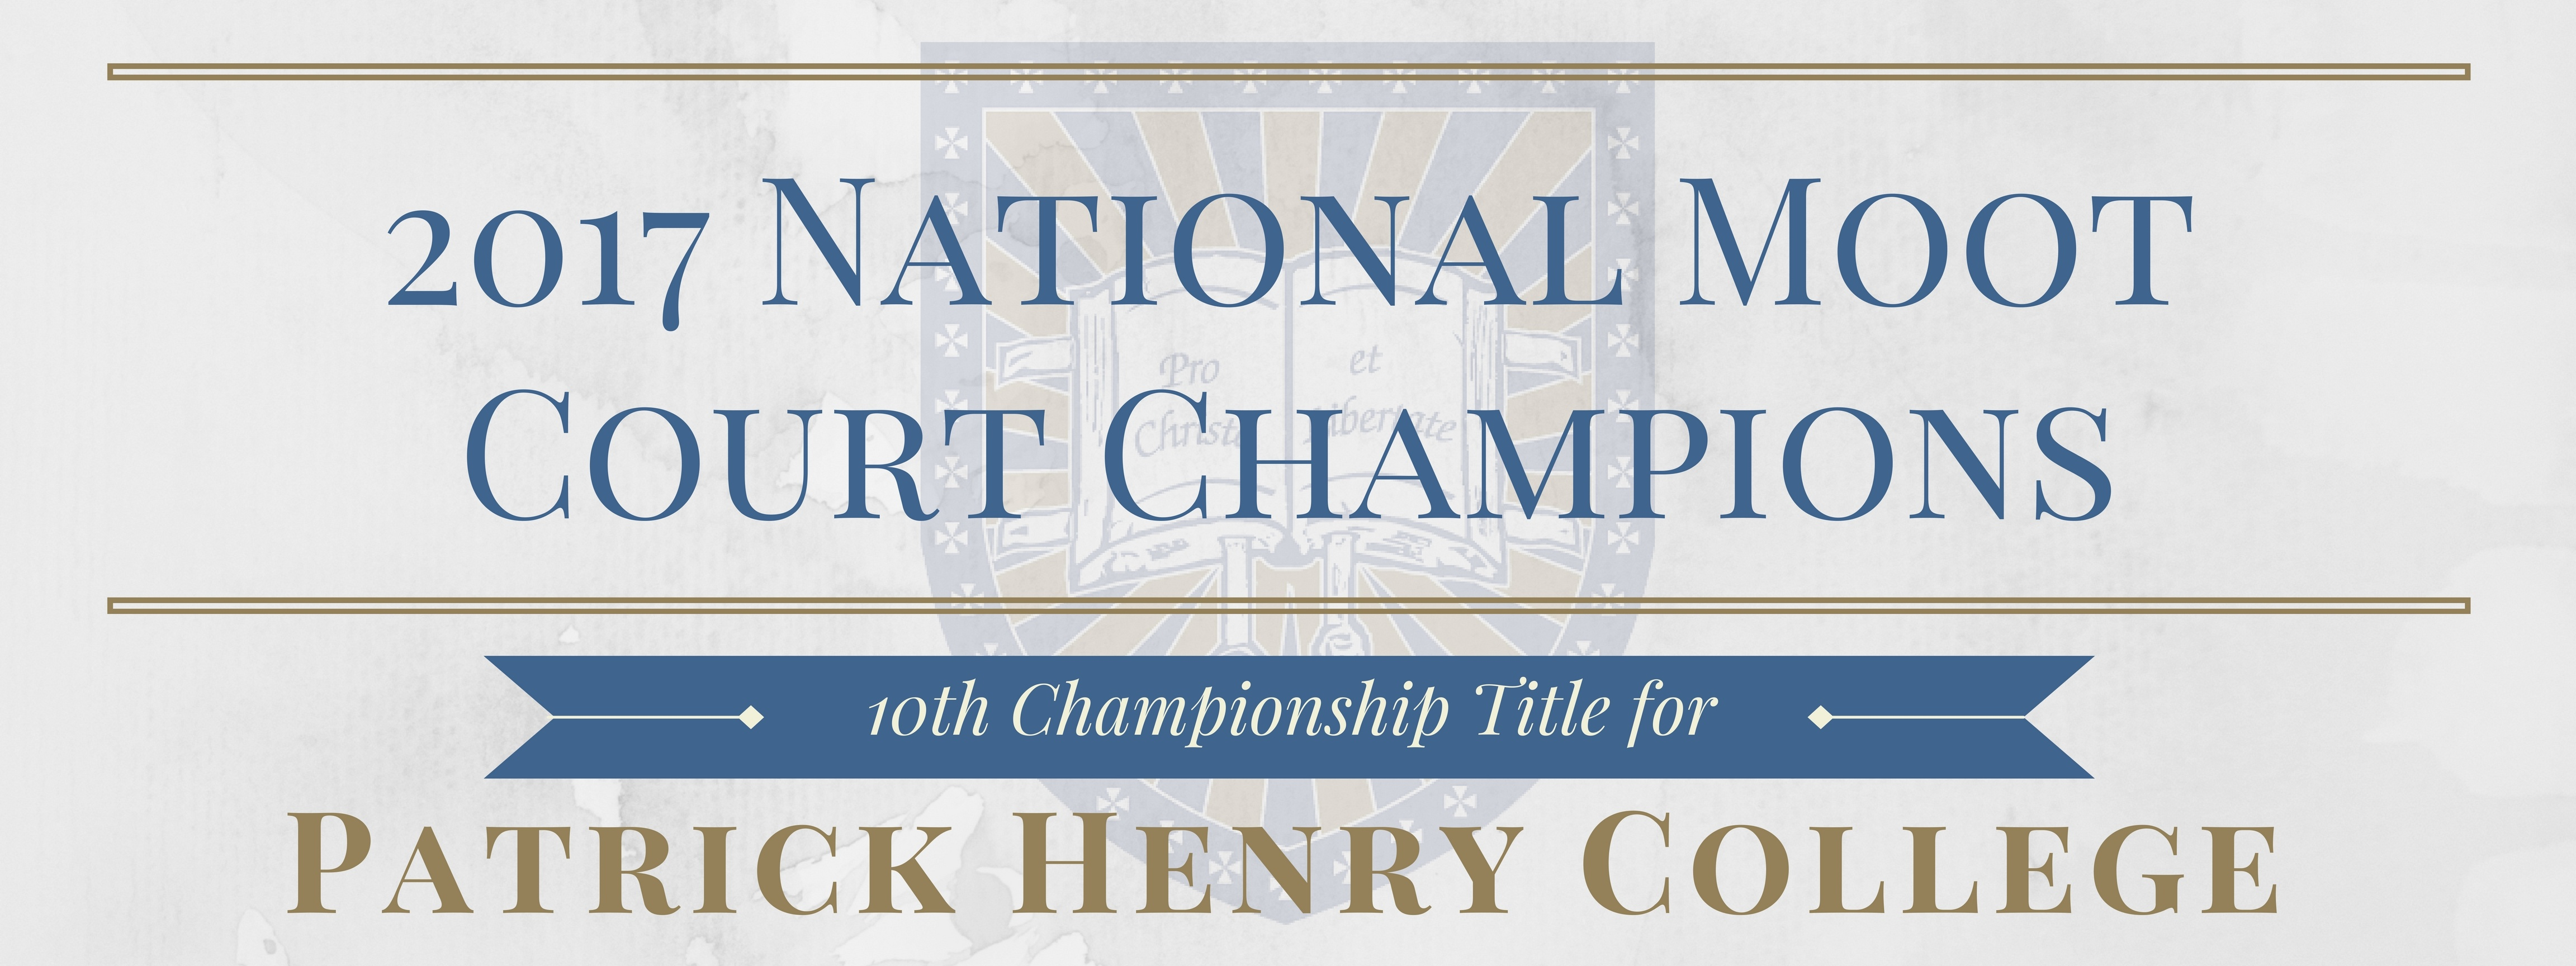 2017 Website Banner for National Moot Court (1).jpg